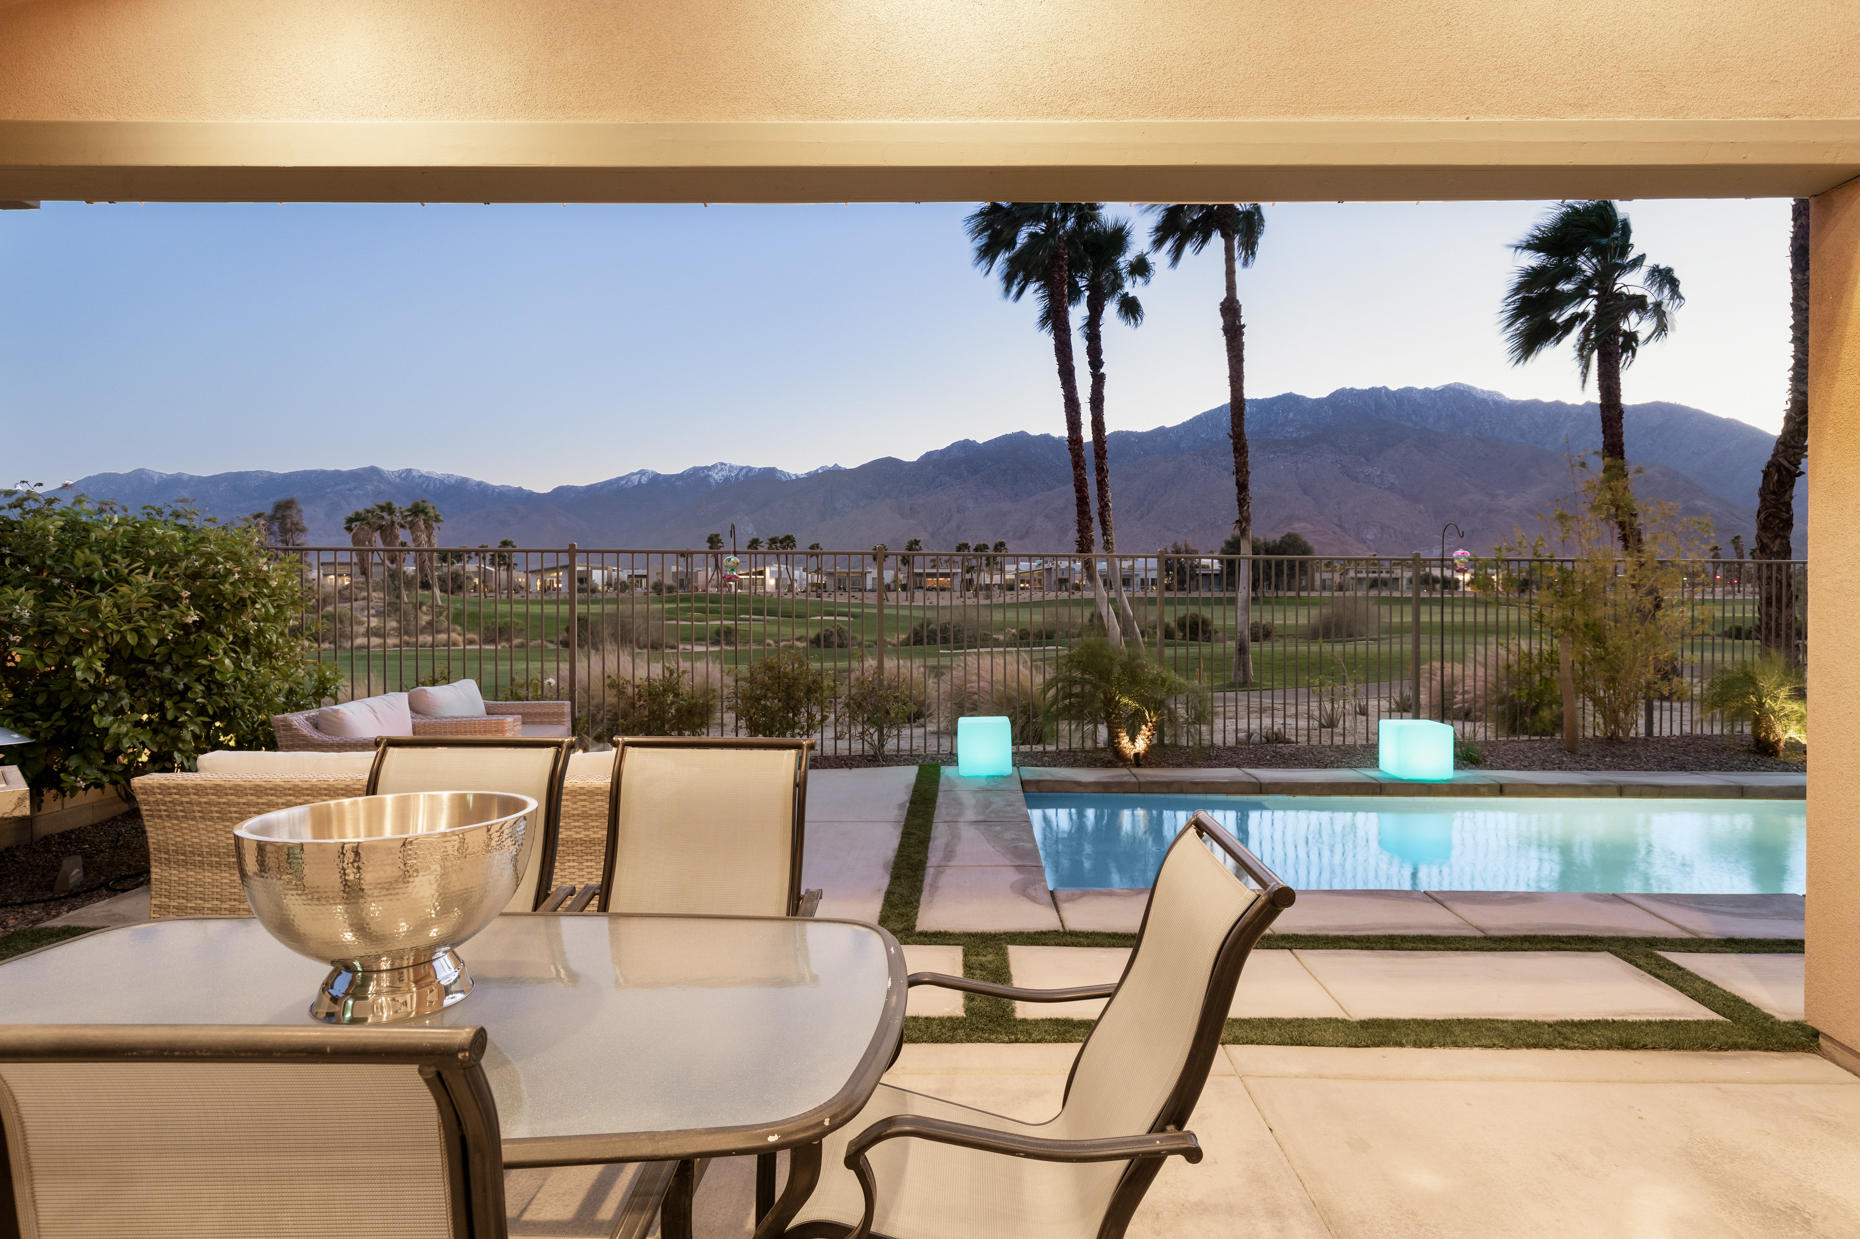 Breathtaking uninterrupted views across the golf course to the mountains.  The back yard has a pool and spa and a covered patio to sit back, relax and enjoy the views. The home  has a great room with vaulted ceilings, two walls of glass that slide back to give the full indoor outdoor living experience, one off the living and one off the kitchen area to the center courtyard. The reconfigured kitchen has a massive center island turned to face the views, off the kitchen is the laundry/utility room.  2 bedrooms and a den, the master is positioned at the rear of the home to take advantage for the views and give access to the pool and spa. The guest bedroom is located at the other end of the house for privacy.  The glass walled den also has a wall of sliding glass panels that open to the center courtyard.  Tiled throughout except the bedrooms, this home is perfect for full time residency of a fabulous part time retreat compete with direct access to a two car garage.  Solar ready with a thankless hot water system